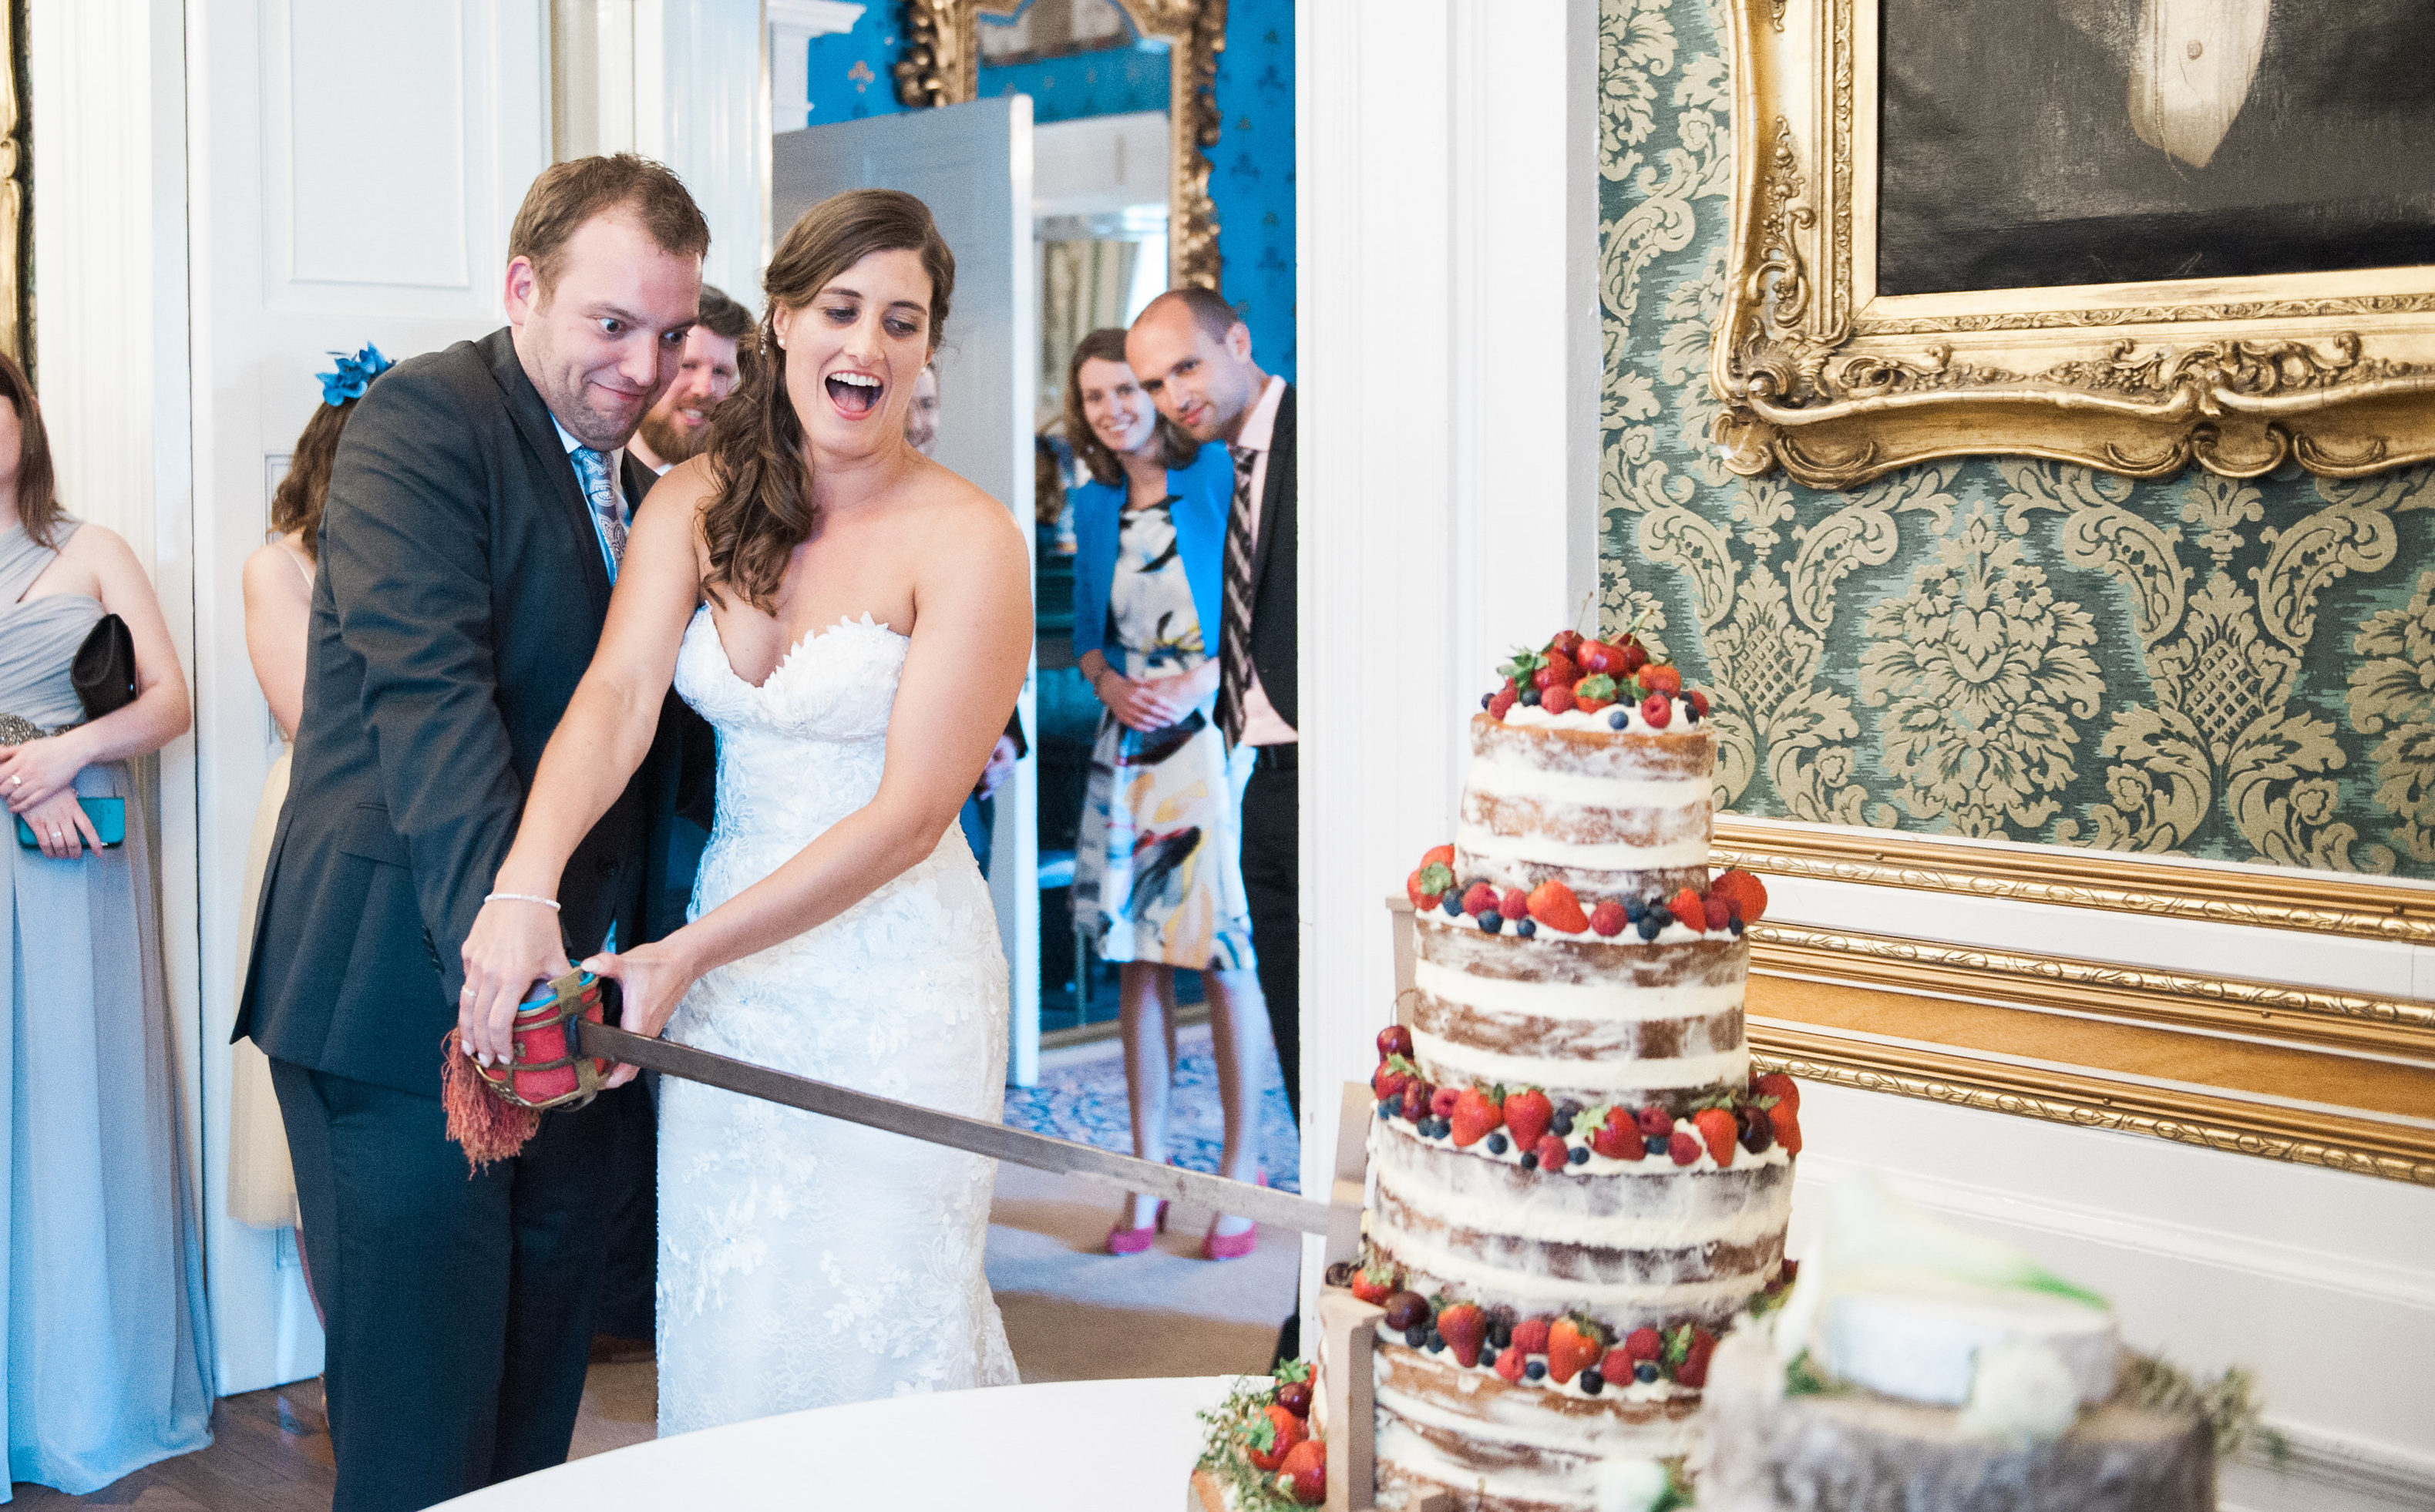 A bride and groom cutting the cake with a sword during their destination wedding in Scotland